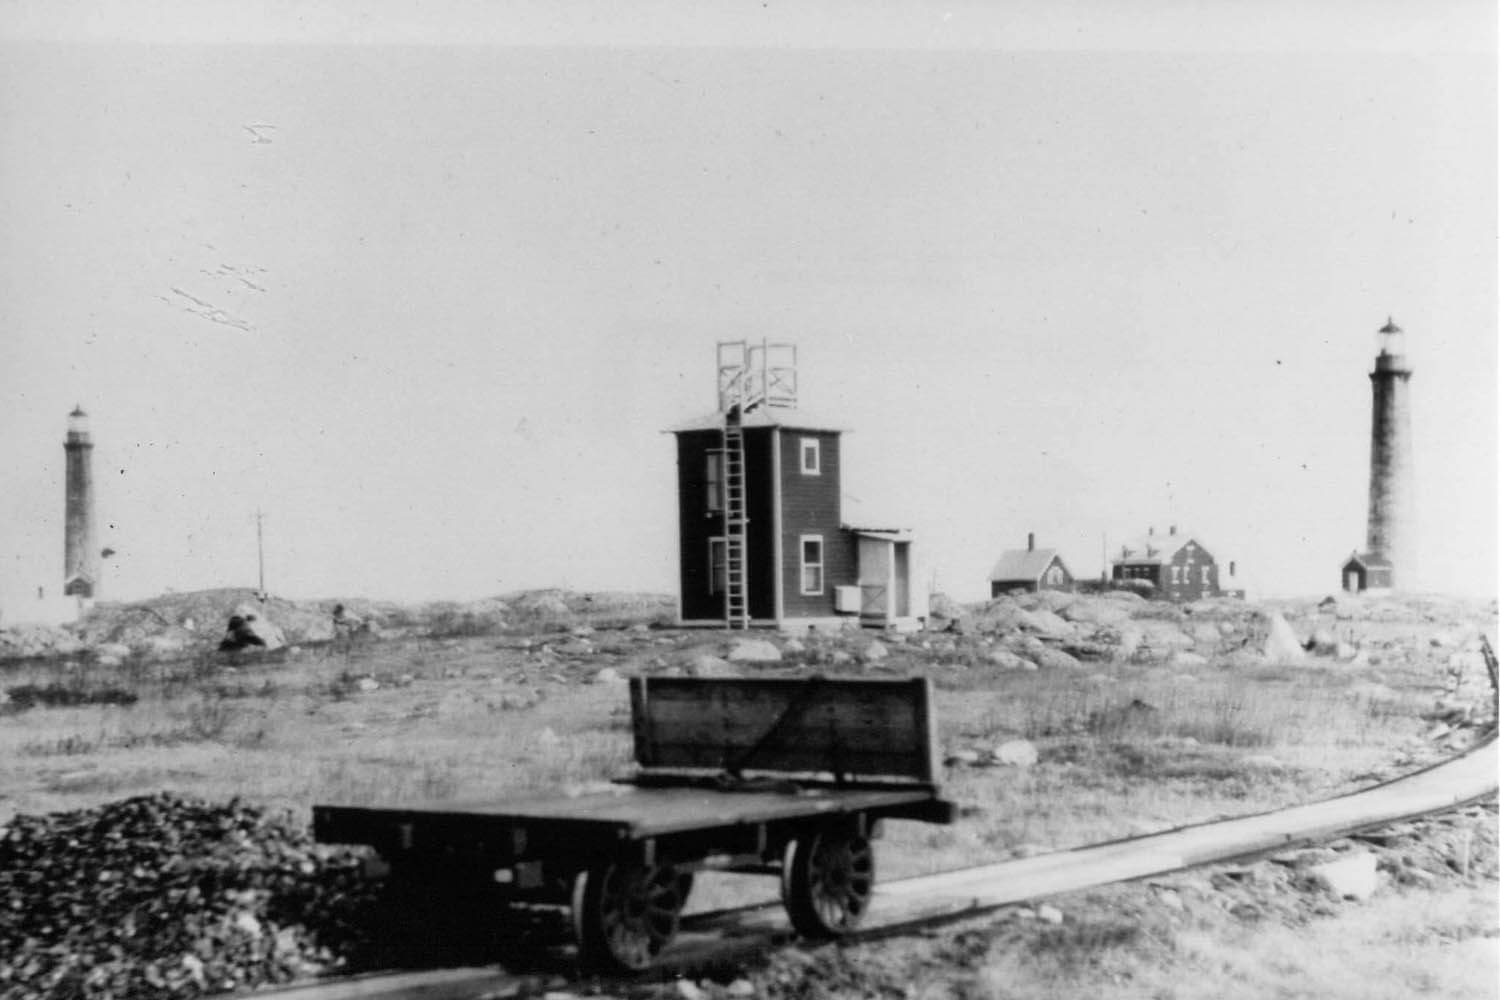 Coal cart near the radio compass tower operated by the U.S. Navy c.1911.